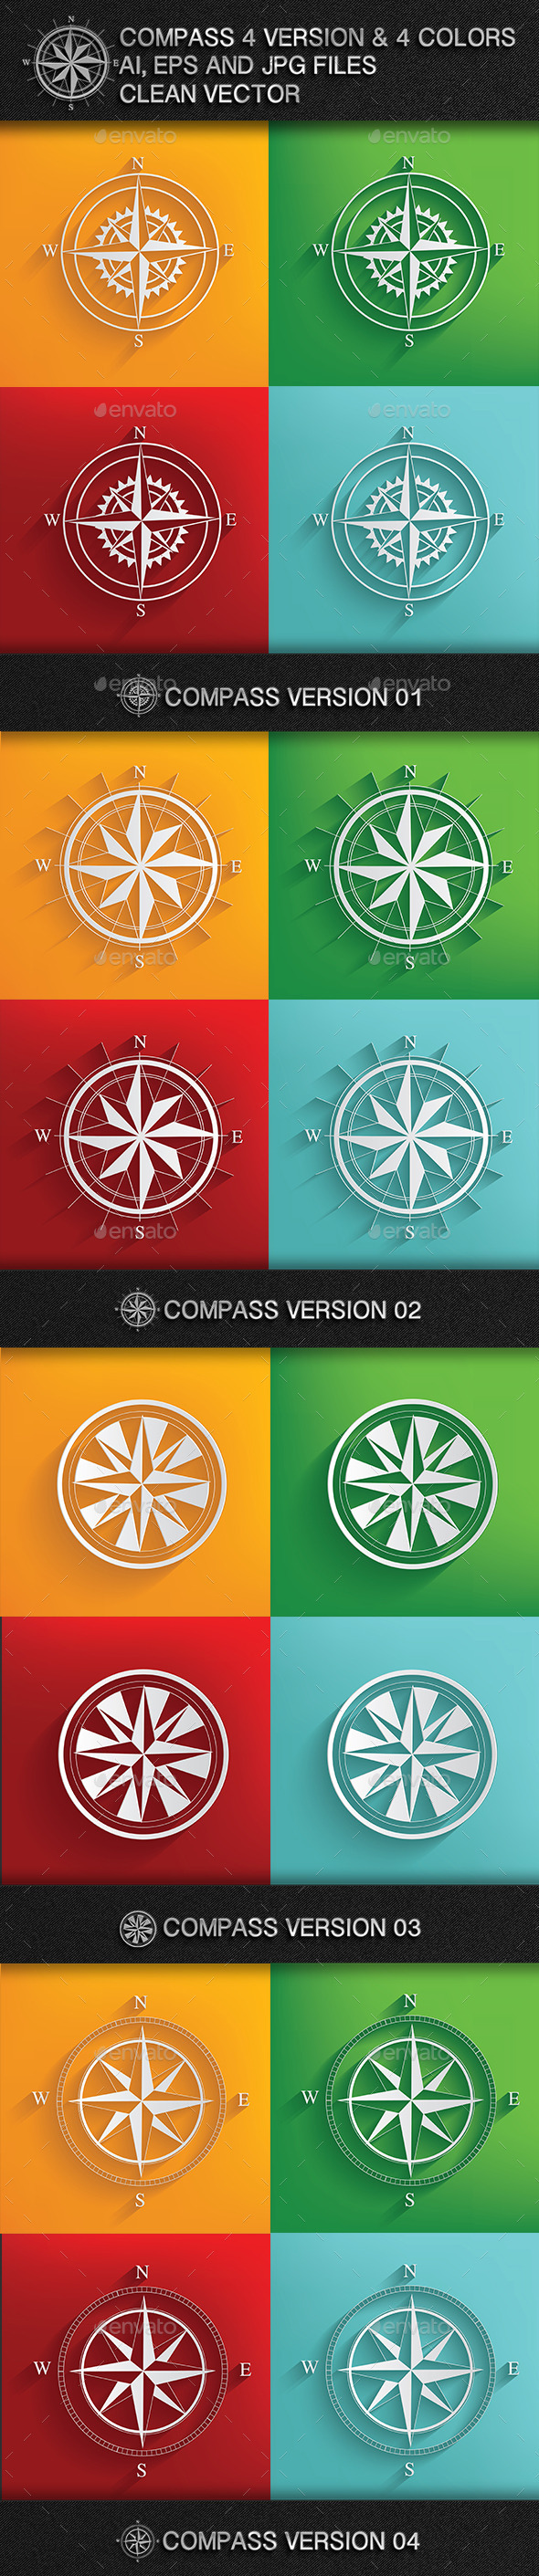 4 Compass & 4 Colours - Objects Vectors